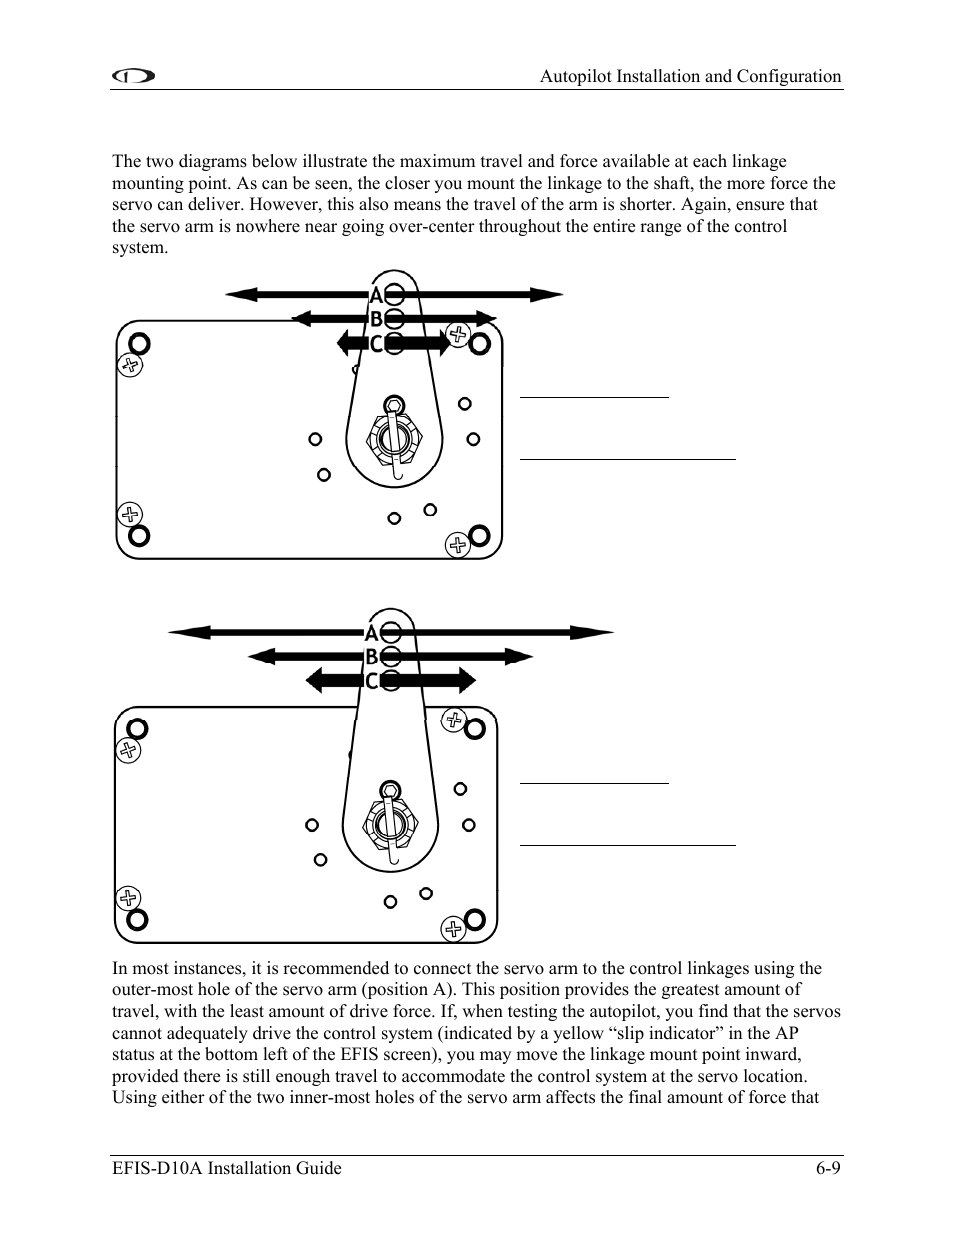 Linkage mount position force and travel | Dynon Avionics EFIS-D10A Installation  Guide User Manual